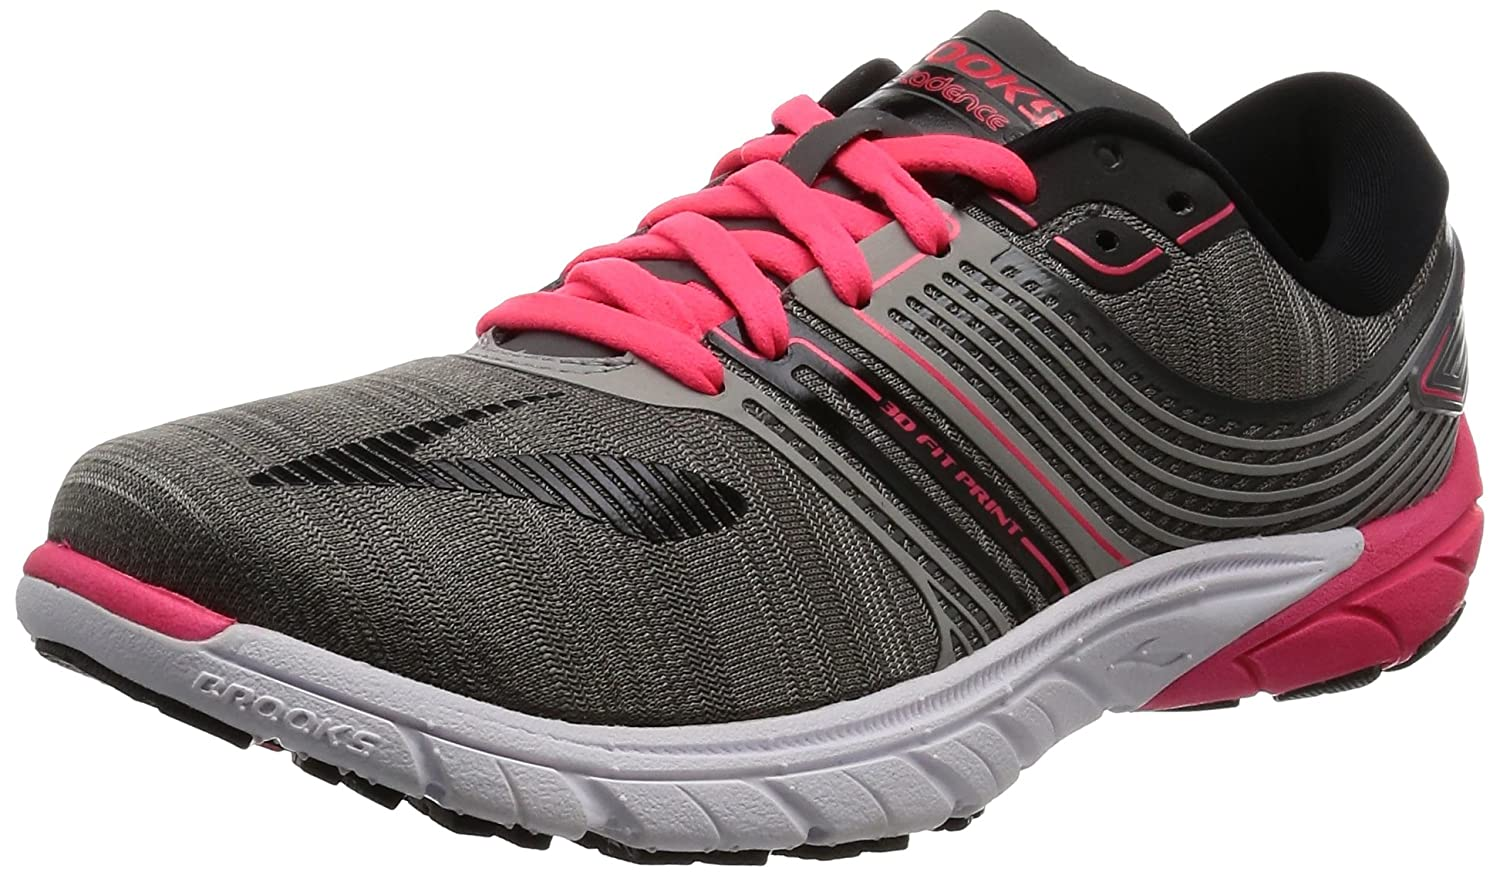 Brooks Womens PureCadence 6 Overpronation Stability Running Shoe B01GEZUPPY 7 B(M) US|Castle Rock/Black/Diva Pink